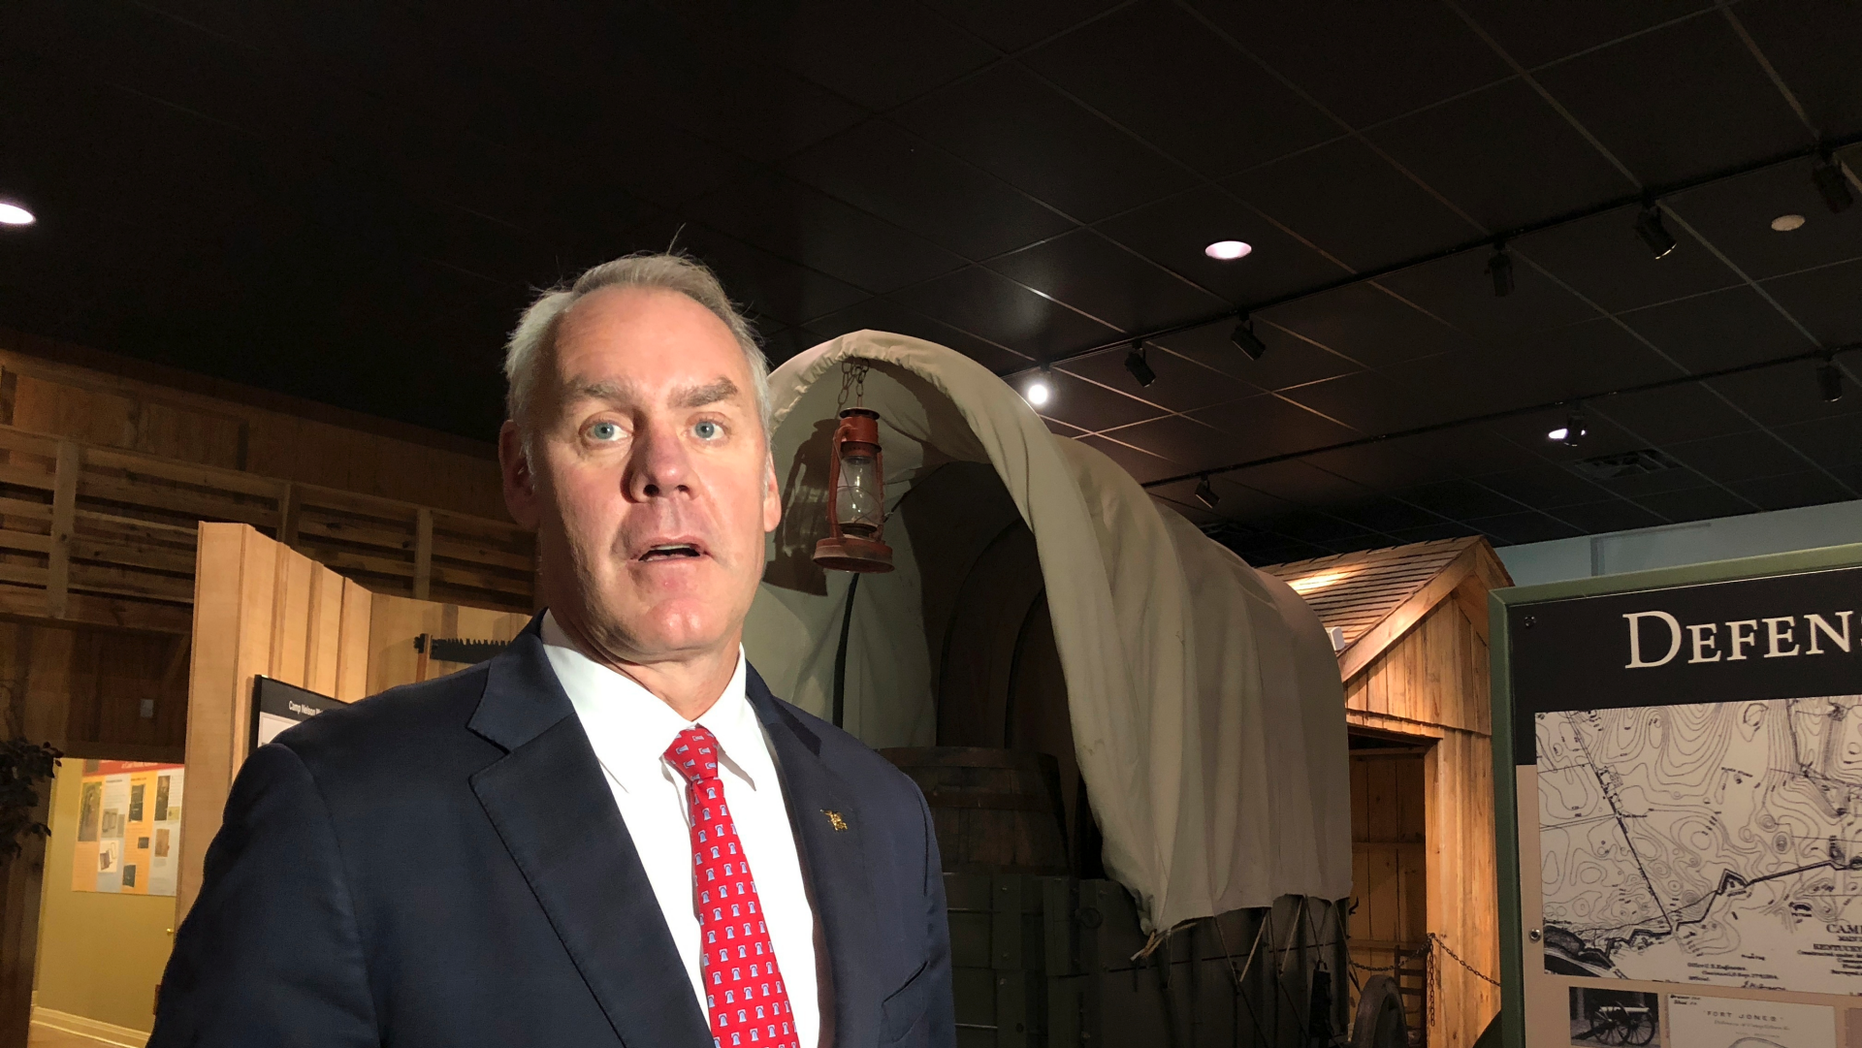 U.S. Interior Secretary Ryan Zinke speaks with reporters at the Camp Nelson National Monument on Saturday, Oct. 27, 2018, in Nicholasville, Kentucky. Camp Nelson was a Union Army depot during the U.S. Civil War and was a recruiting center for black soldiers. Zinke announced Saturday Camp Nelson has been officially designated as a national monument.  (AP Photo/Adam Beam)